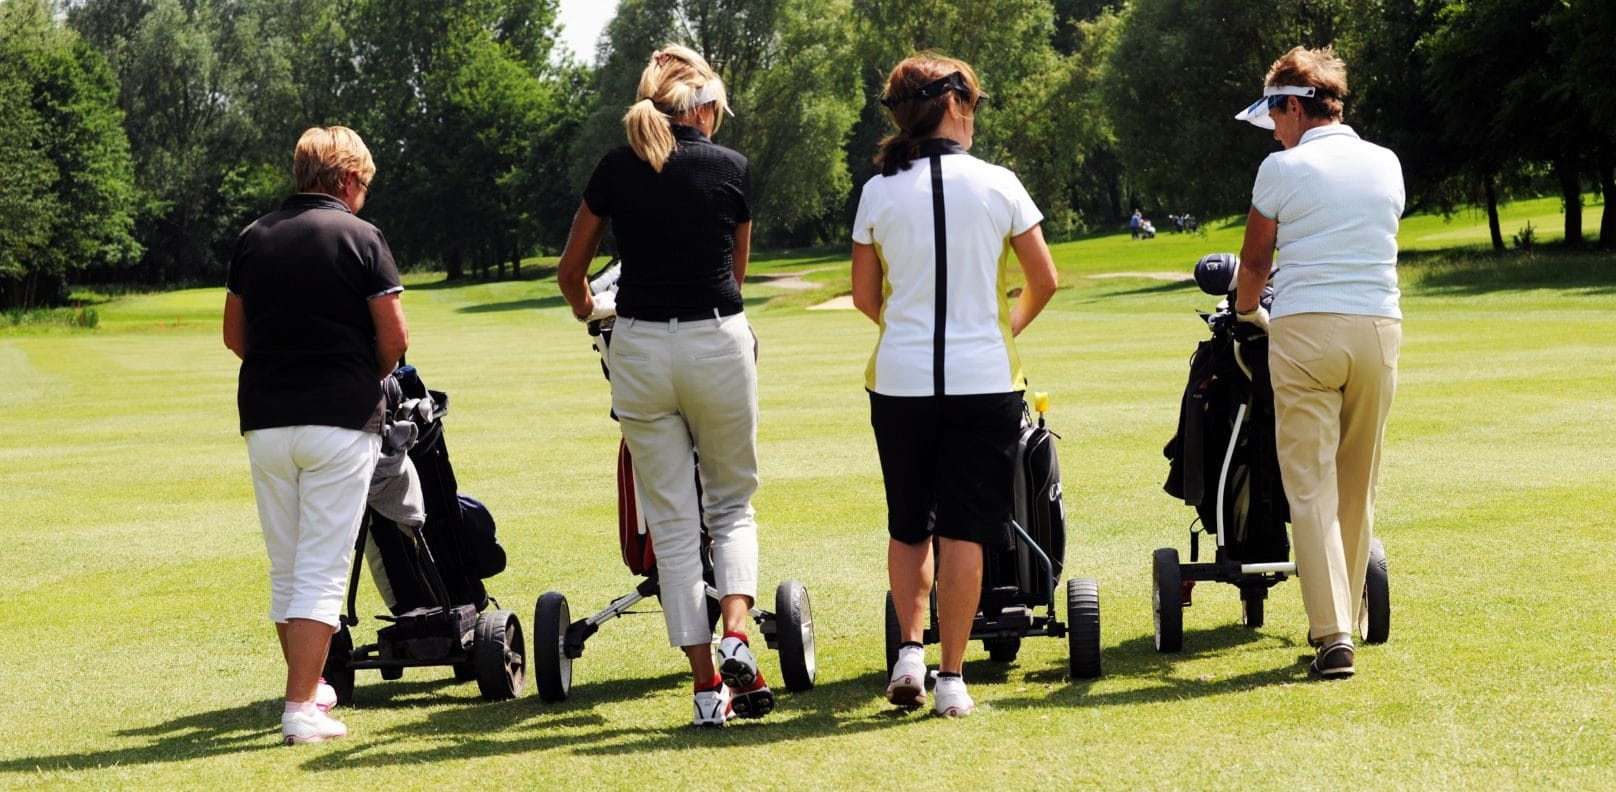 Ladies Golf Open - Pushing Golf Trolleys